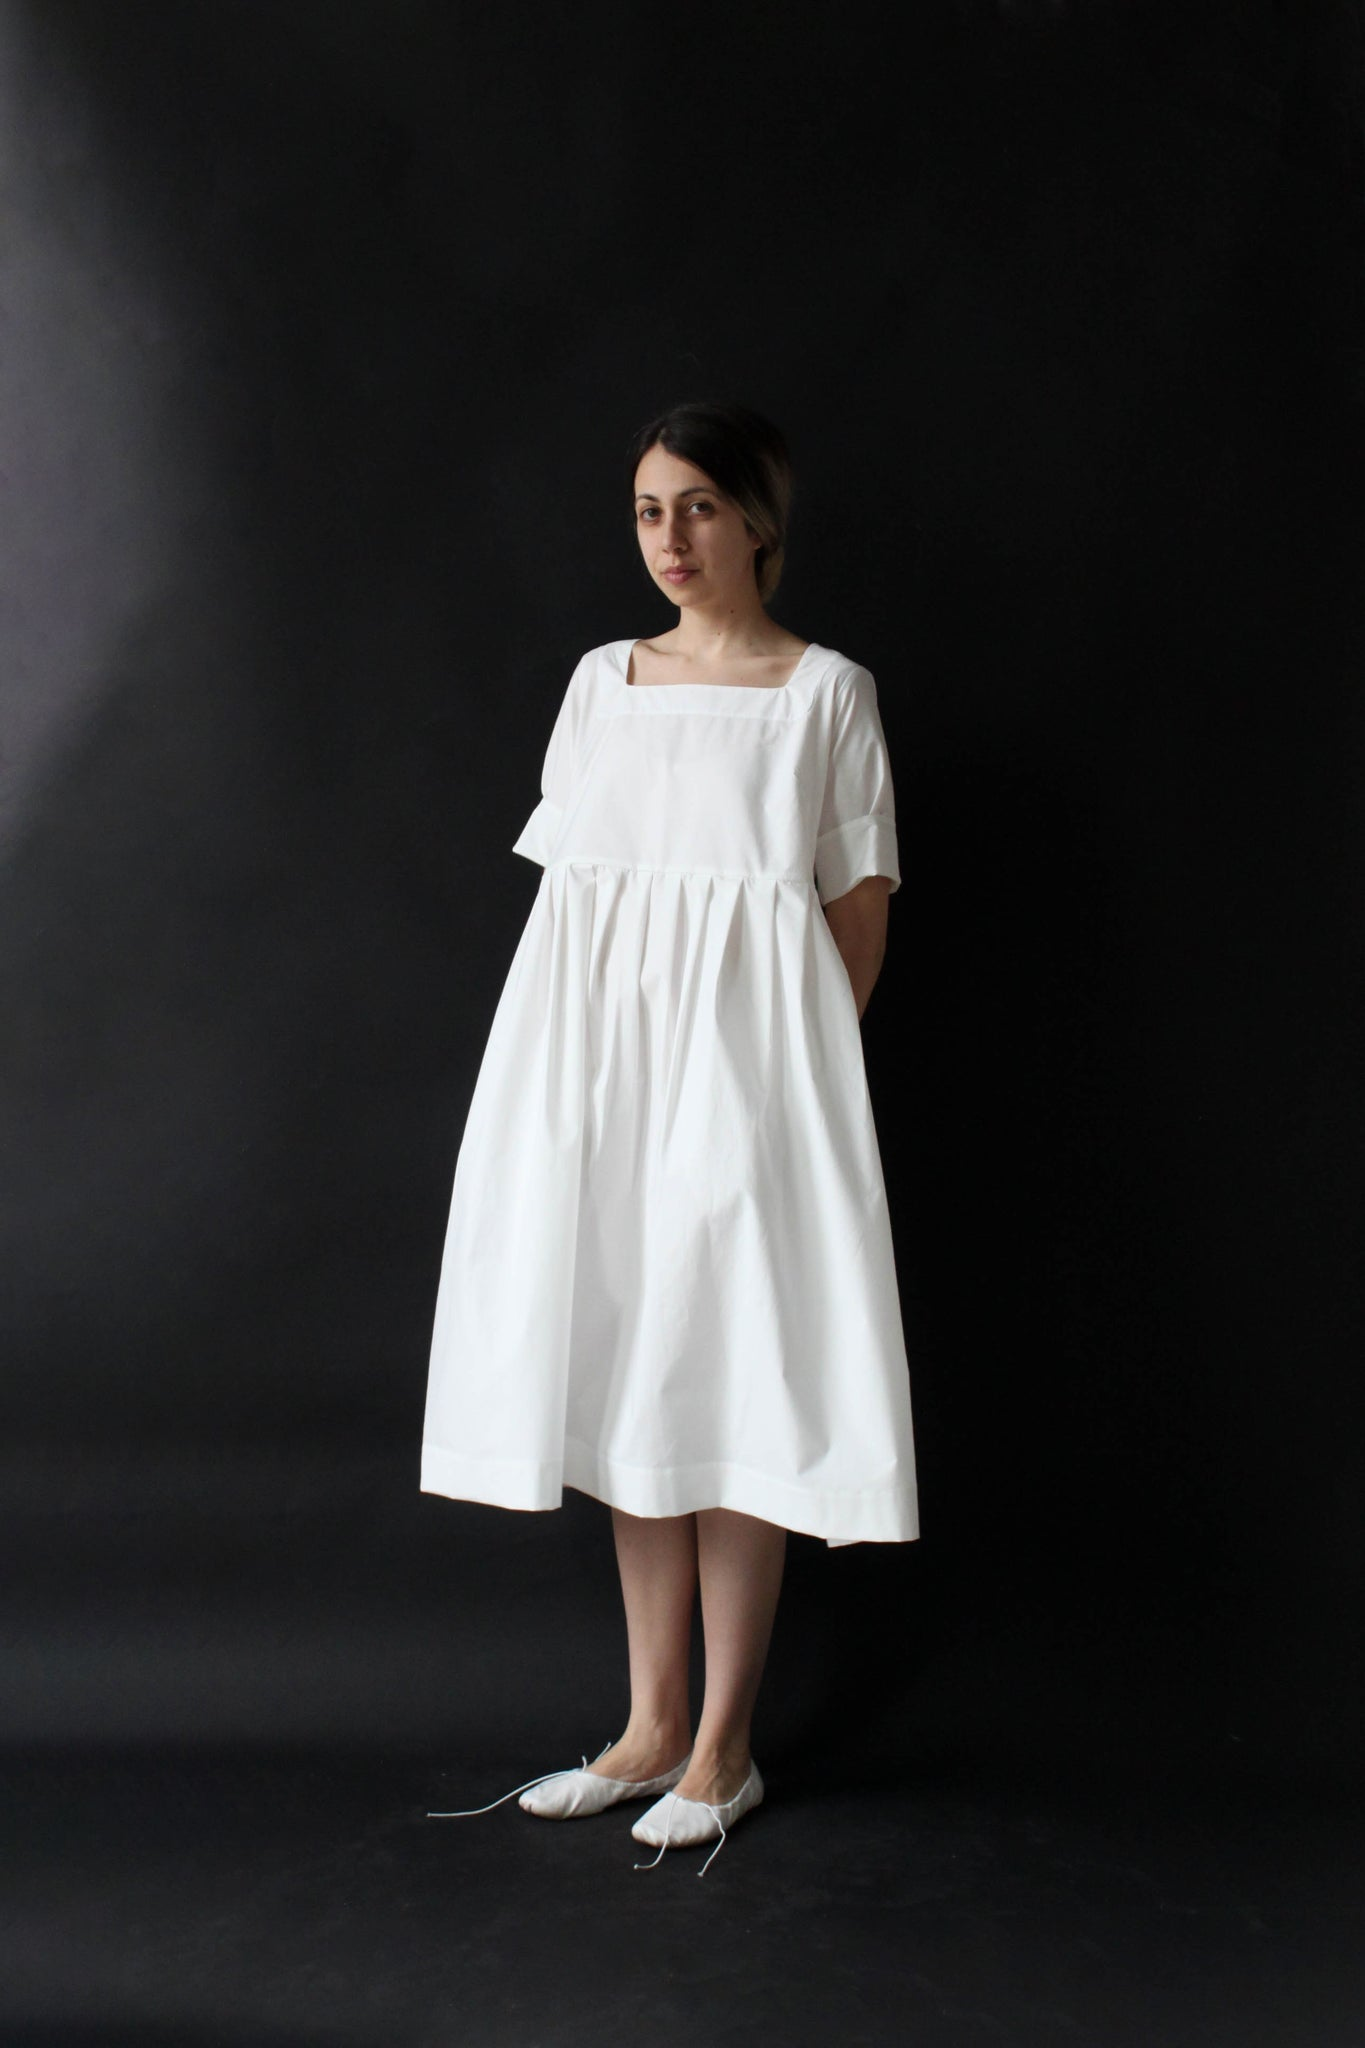 tatiana dress v. 1.0 in white cotton poplin